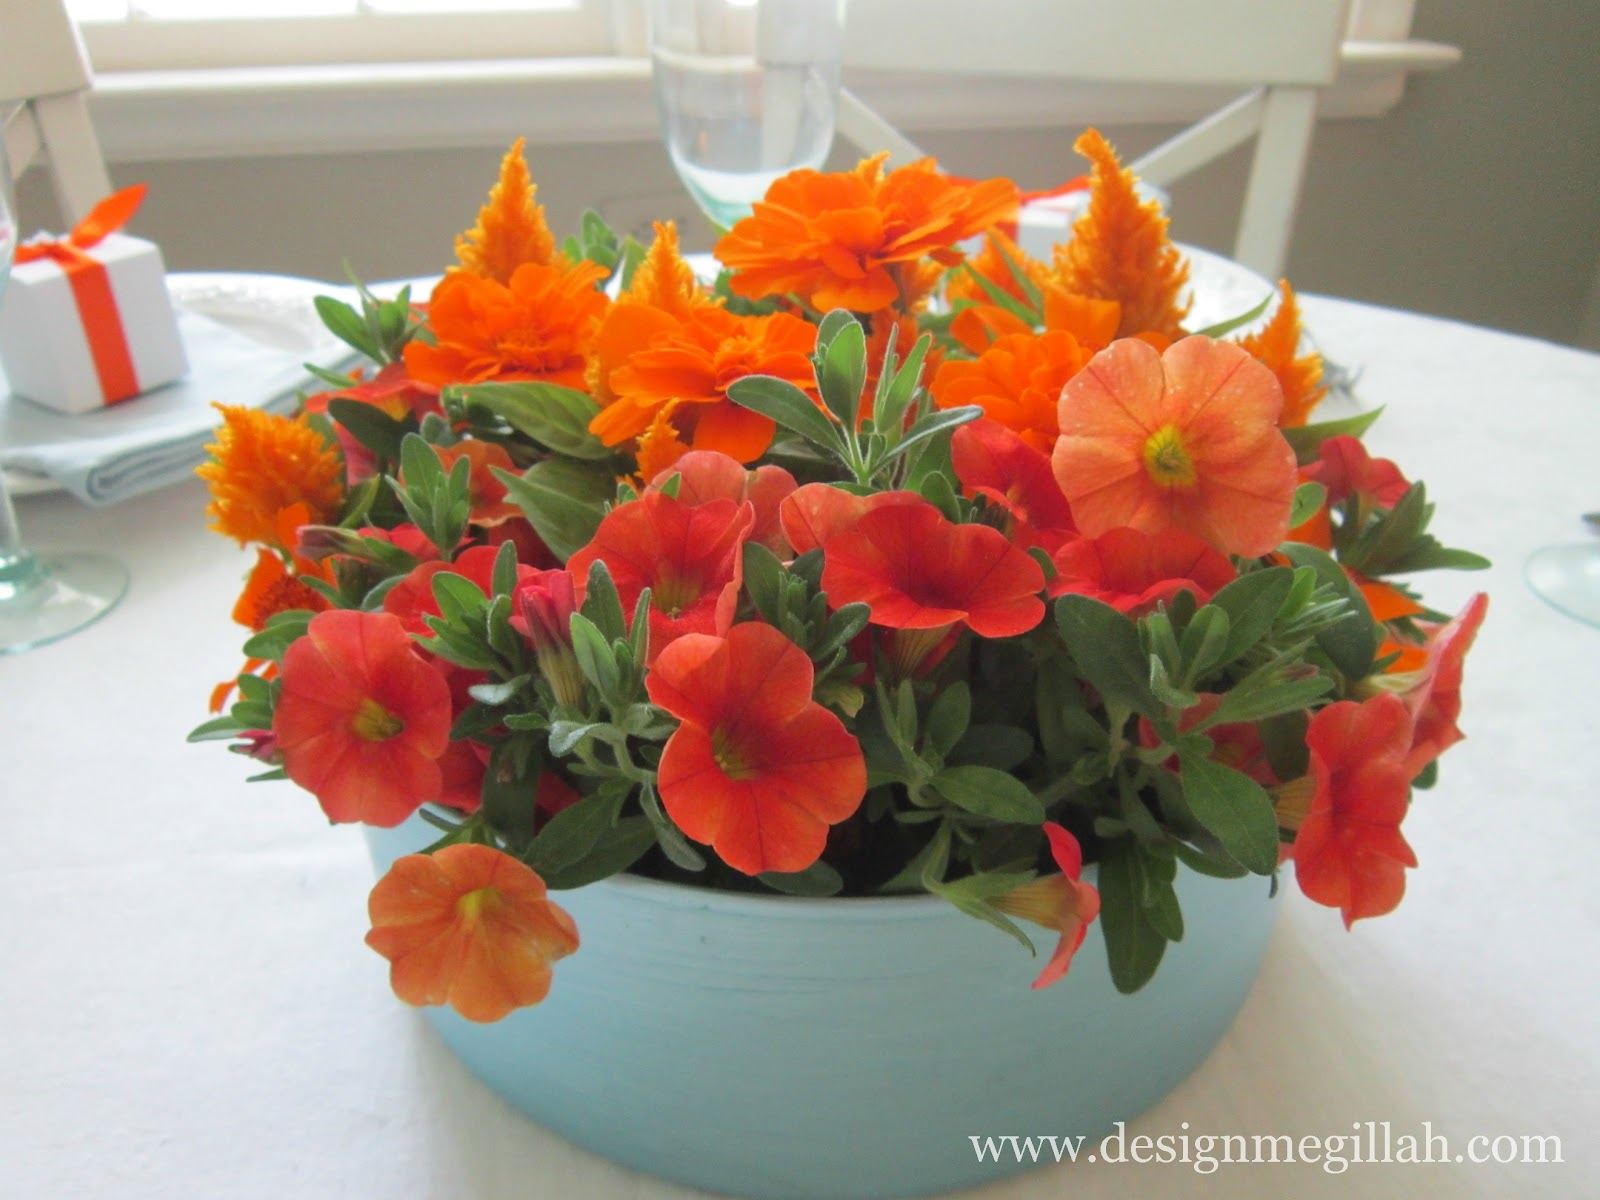 Design Megillah June Flowers Birthday Centerpieces